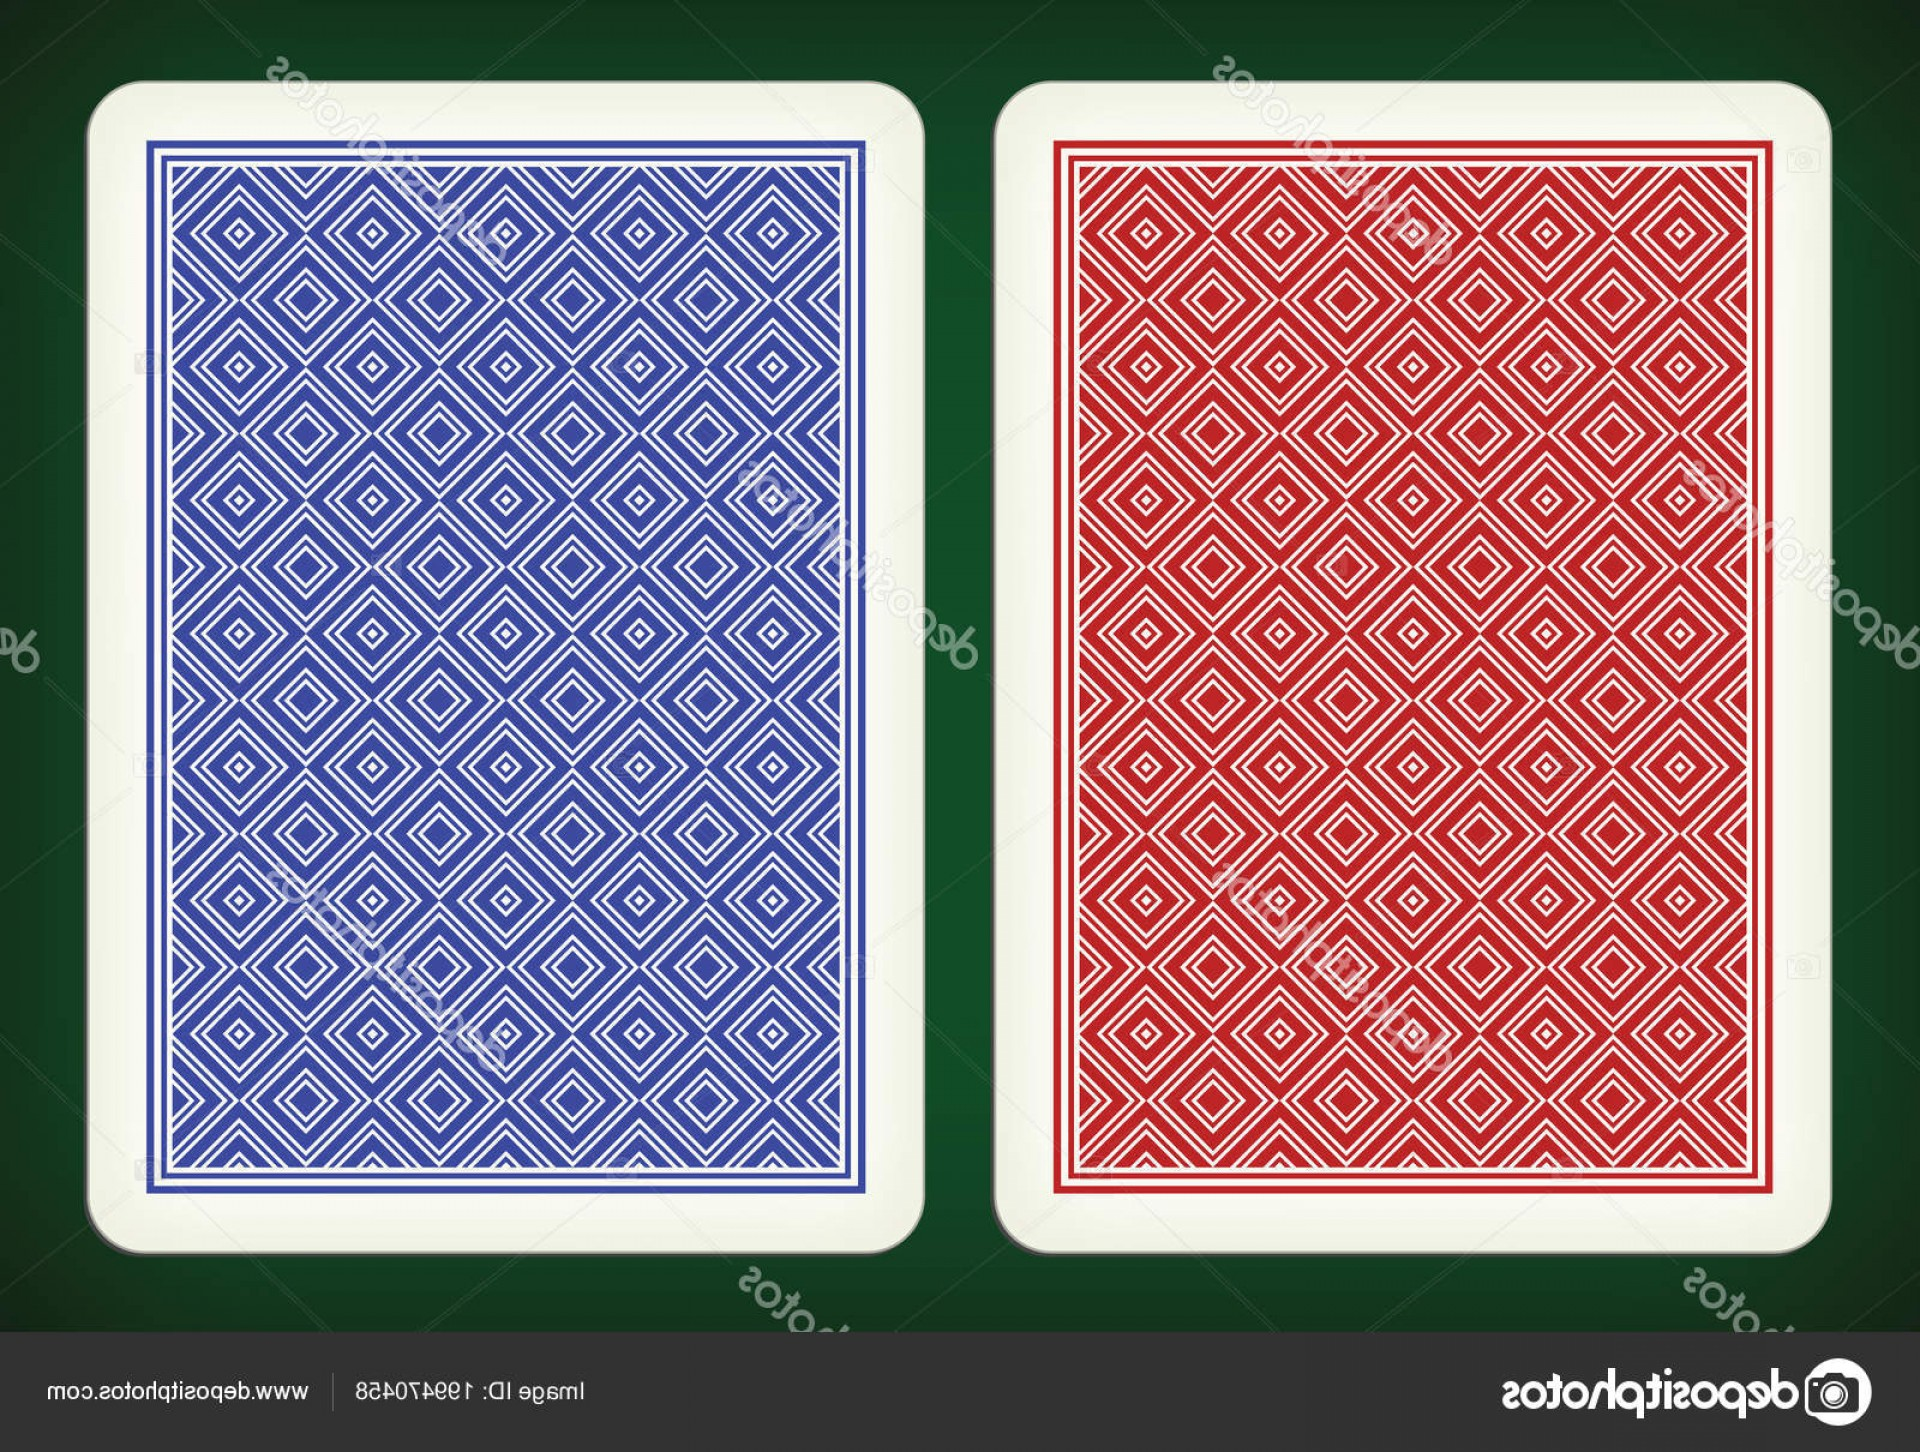 Playing Card Design Vector Illustration: Stock Illustration Back Side Design Playing Cards